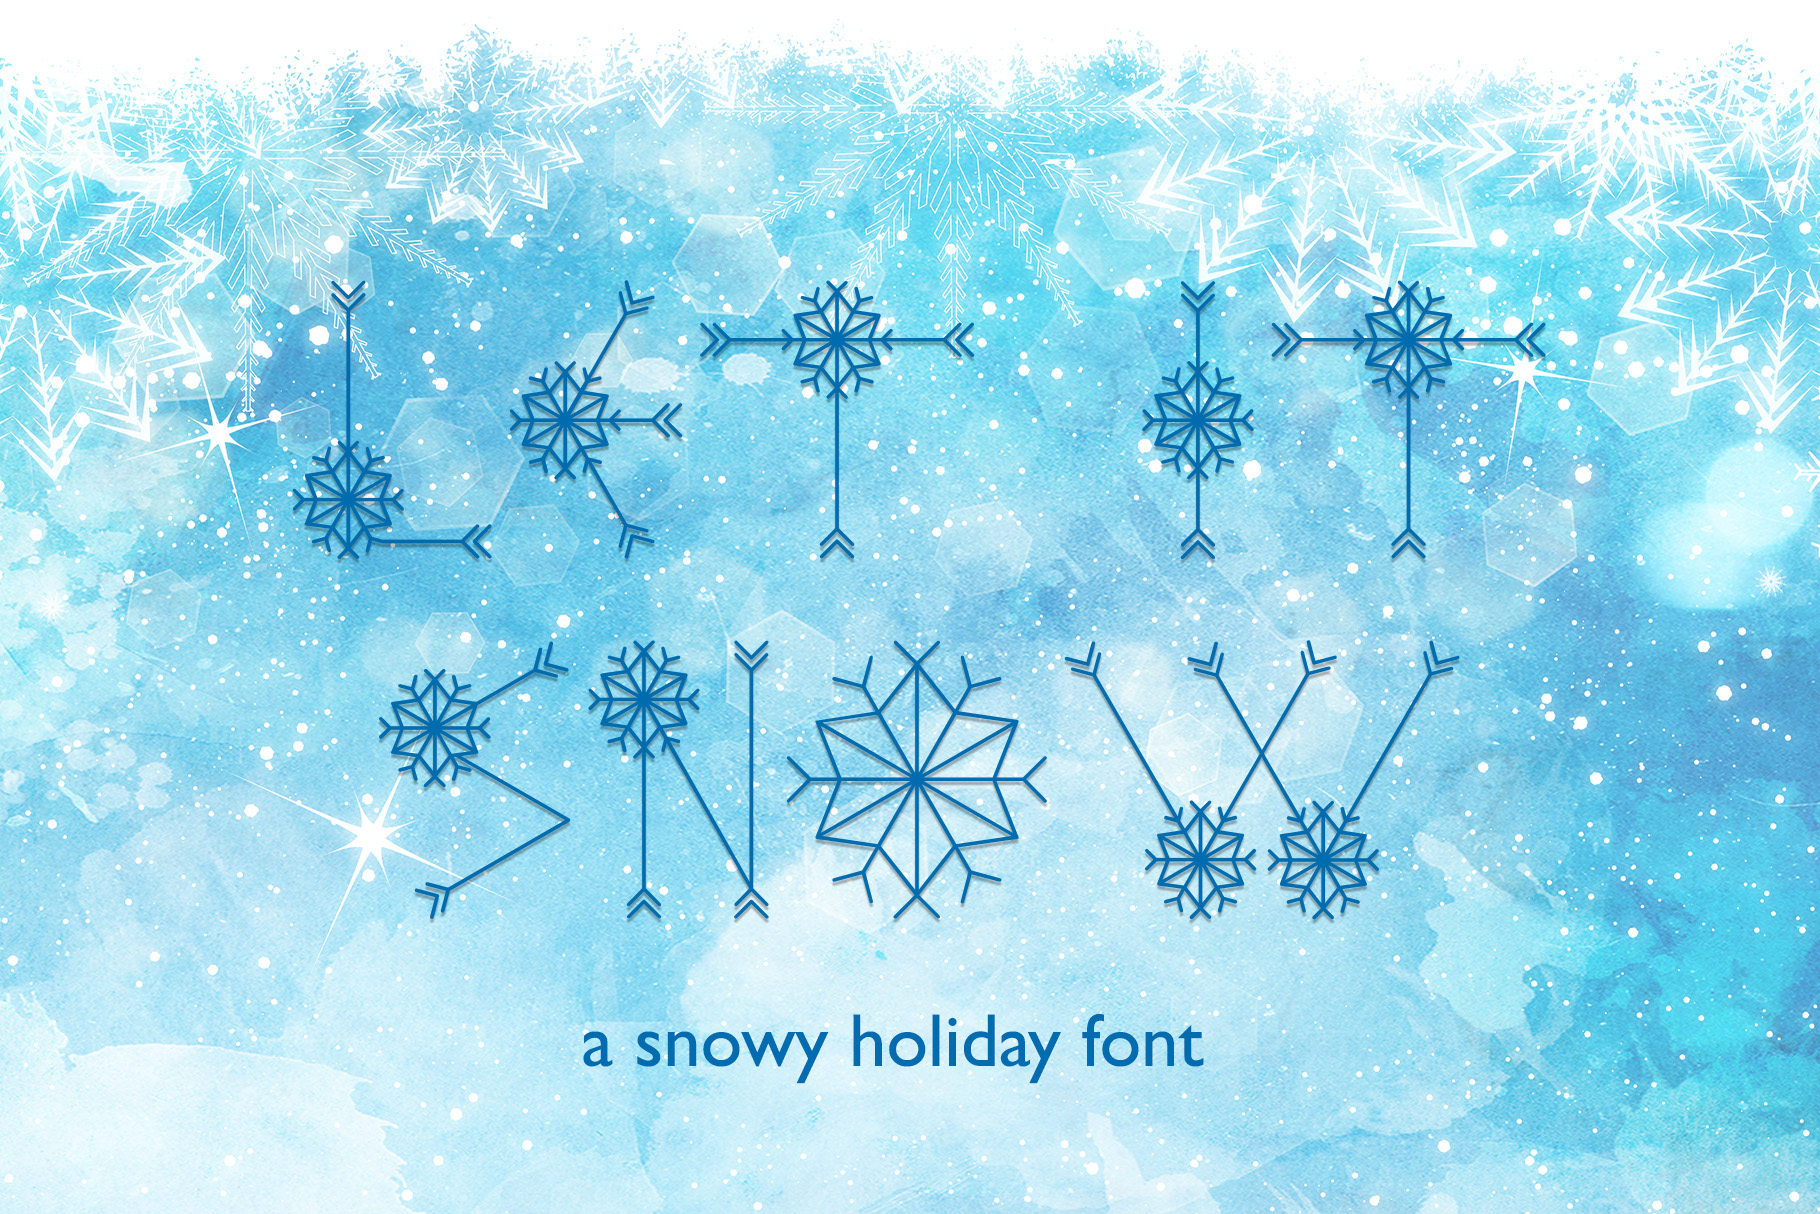 Let It Snow example image 1